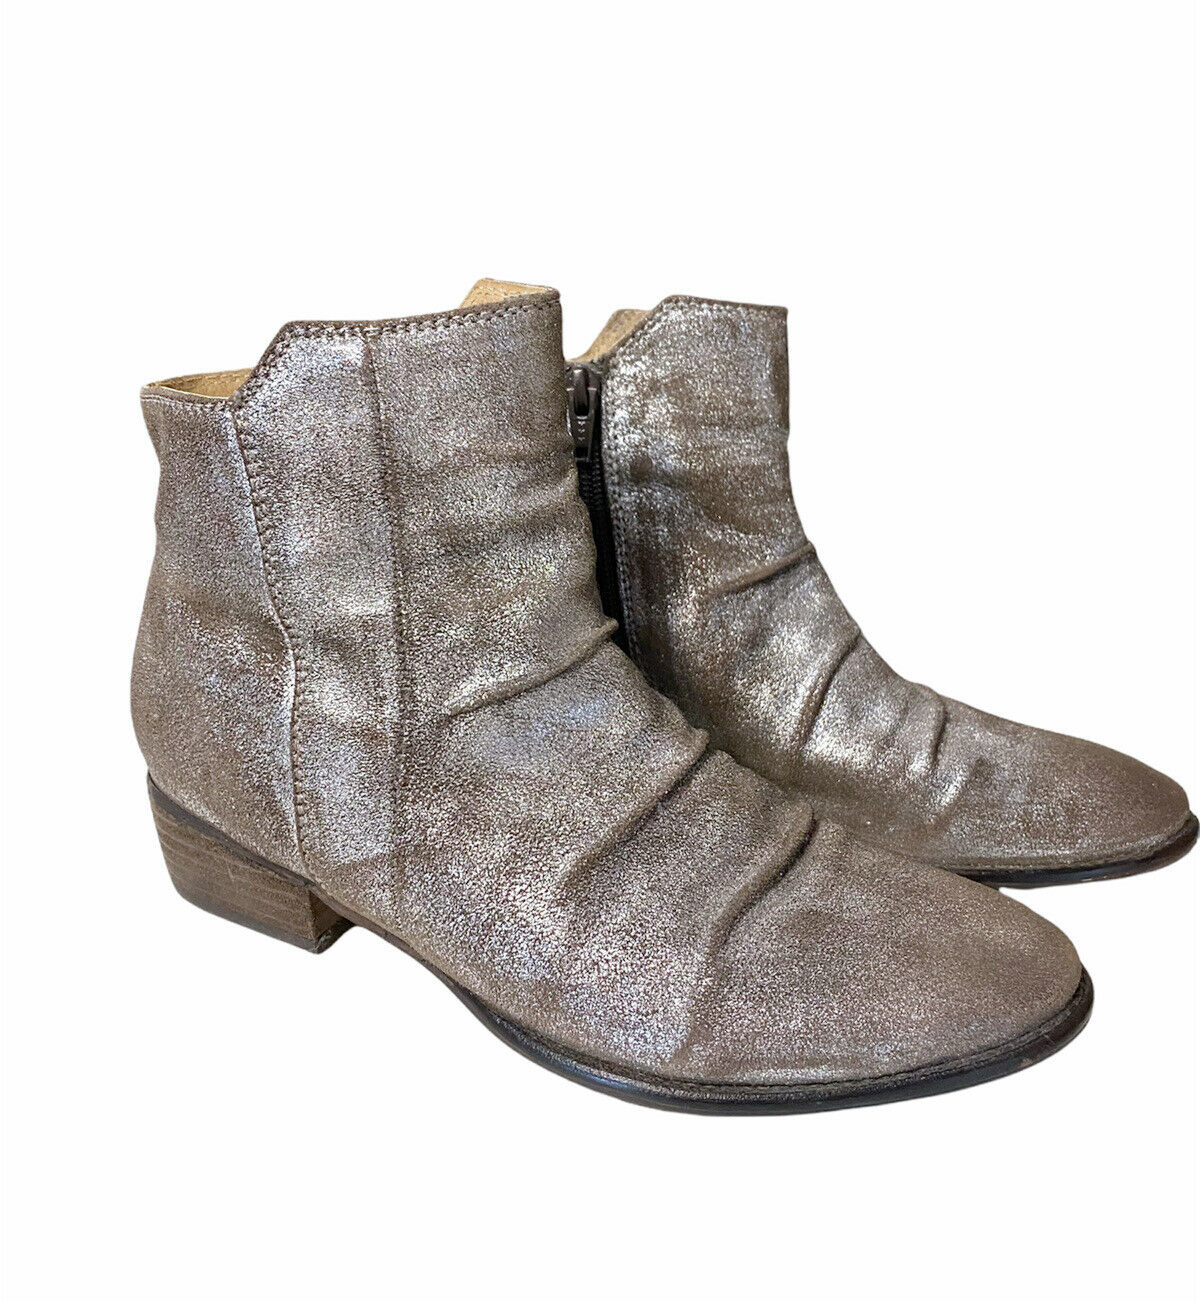 Seychelles Silver Leather Bootie Boots Size 7